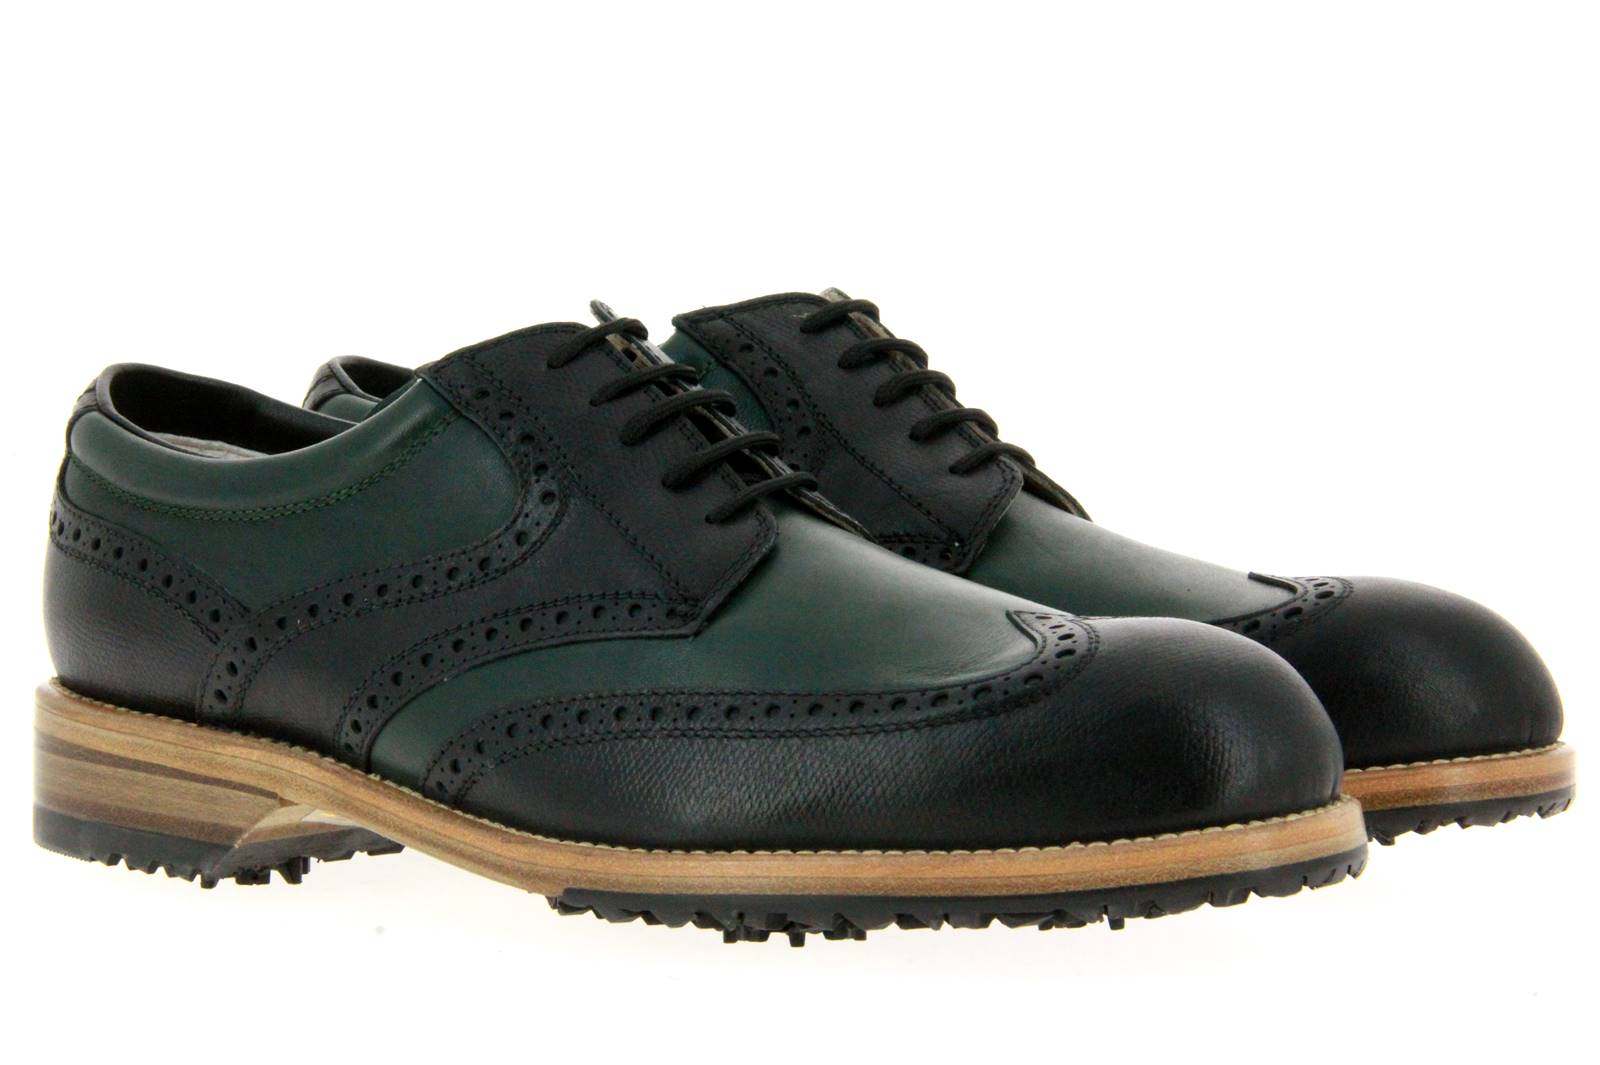 Tee Golf Shoes men's - golf shoe TOMMY NERO VERDE